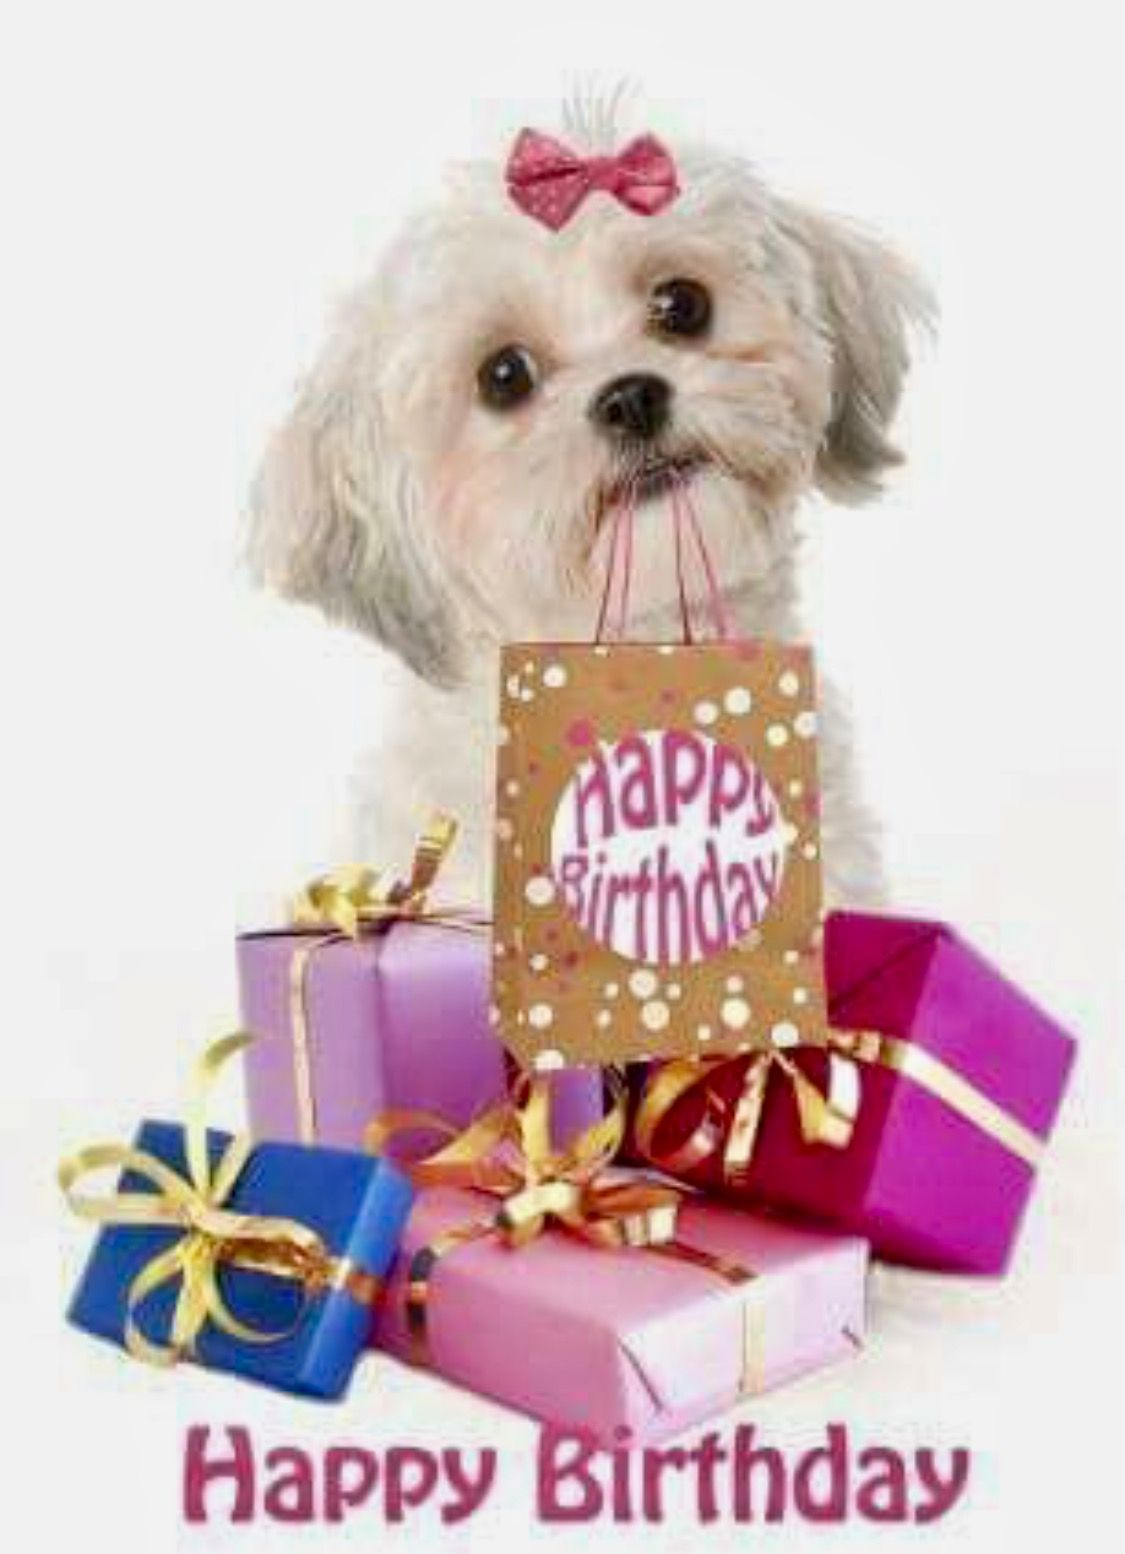 Pin by gary and pat phillips on birthday wishes pinterest happy birthday dog happy birthday images birthday messages birthday wishes dog friends shopping shih tzu birthdays doggies kristyandbryce Choice Image